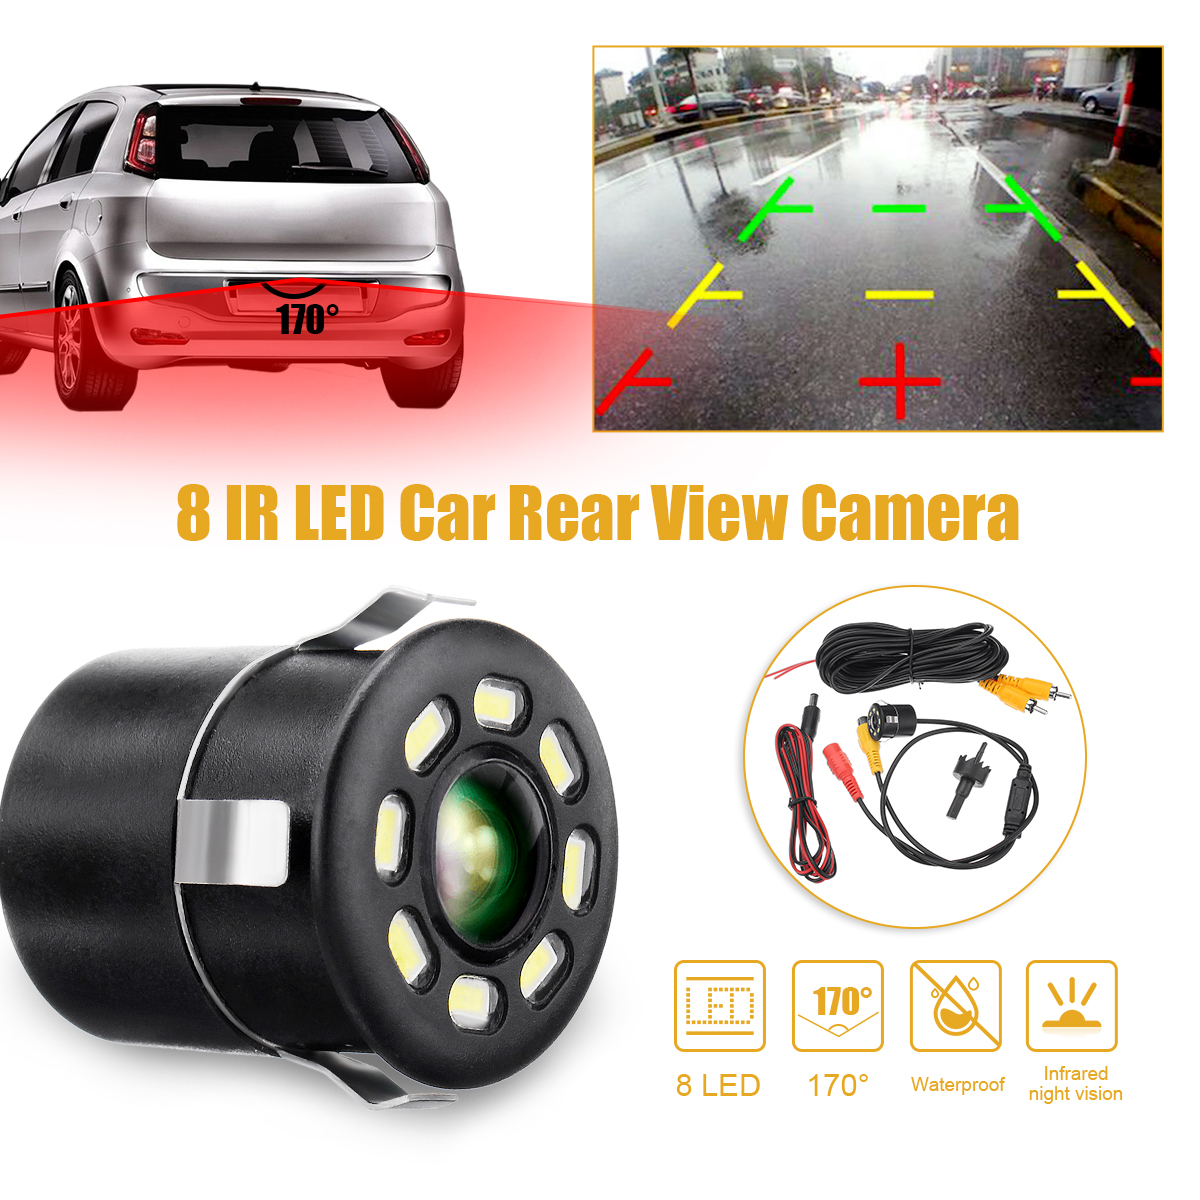 170 Degree Lens 8 LED Car Auto CCD Rear View Camera Waterproof Backup Monitor Parking Reversing Camera HD IR Night Vision170 Degree Lens 8 LED Car Auto CCD Rear View Camera Waterproof Backup Monitor Parking Reversing Camera HD IR Night Vision